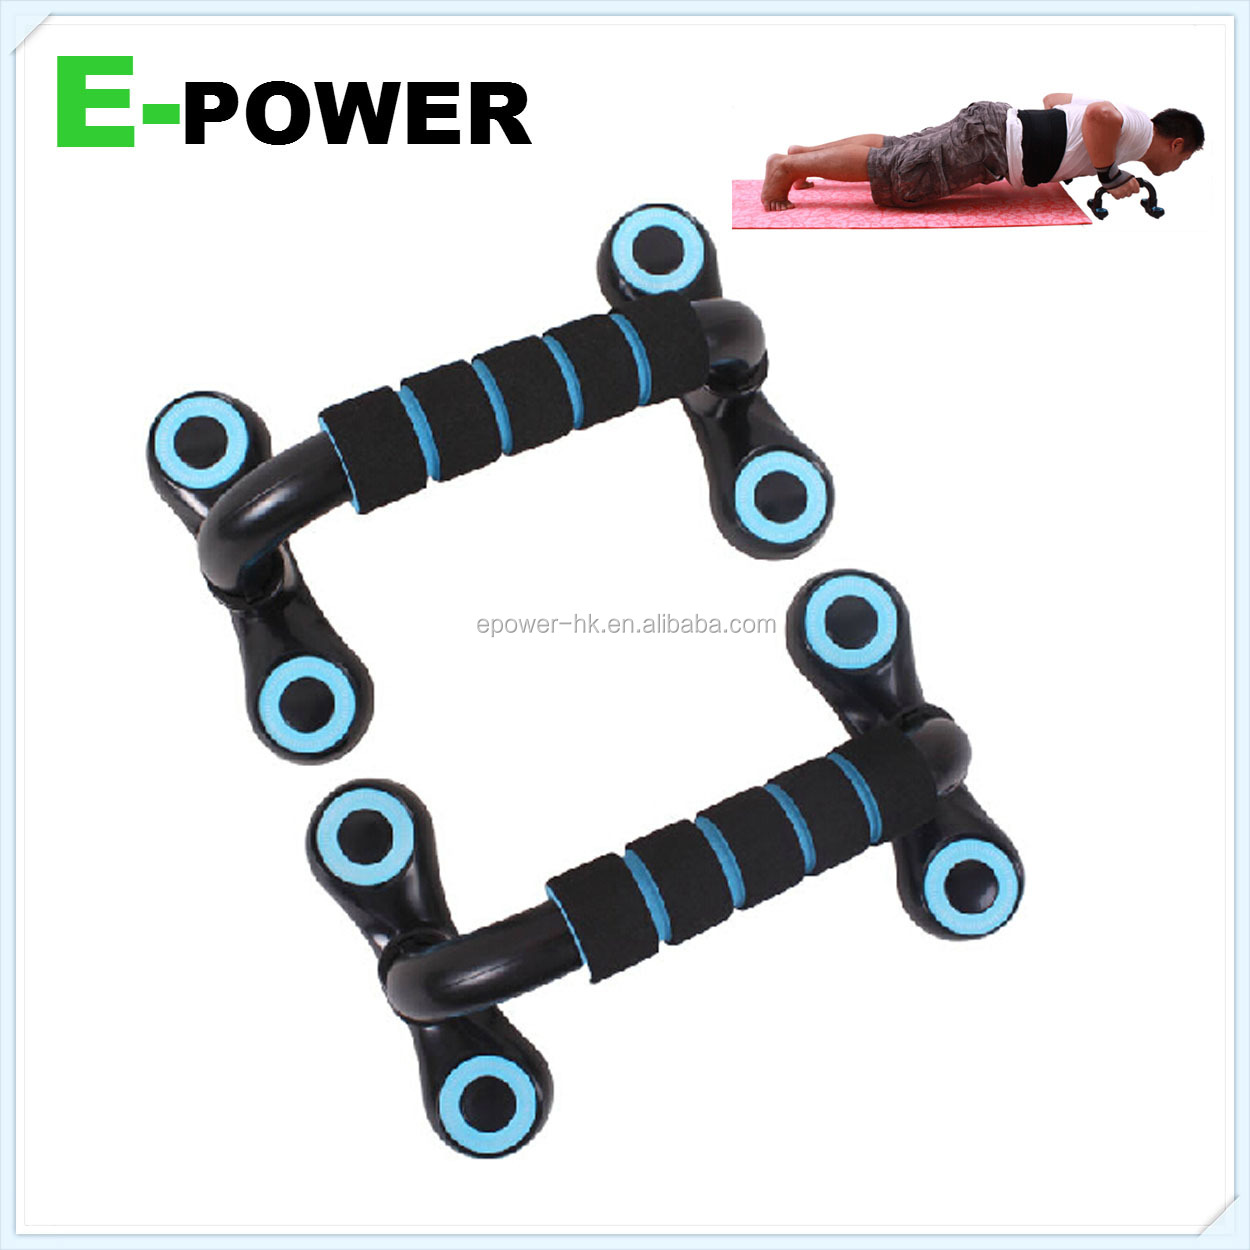 Power Press Push Up - Complete Push Up Training System, Maximum Fitness Gear